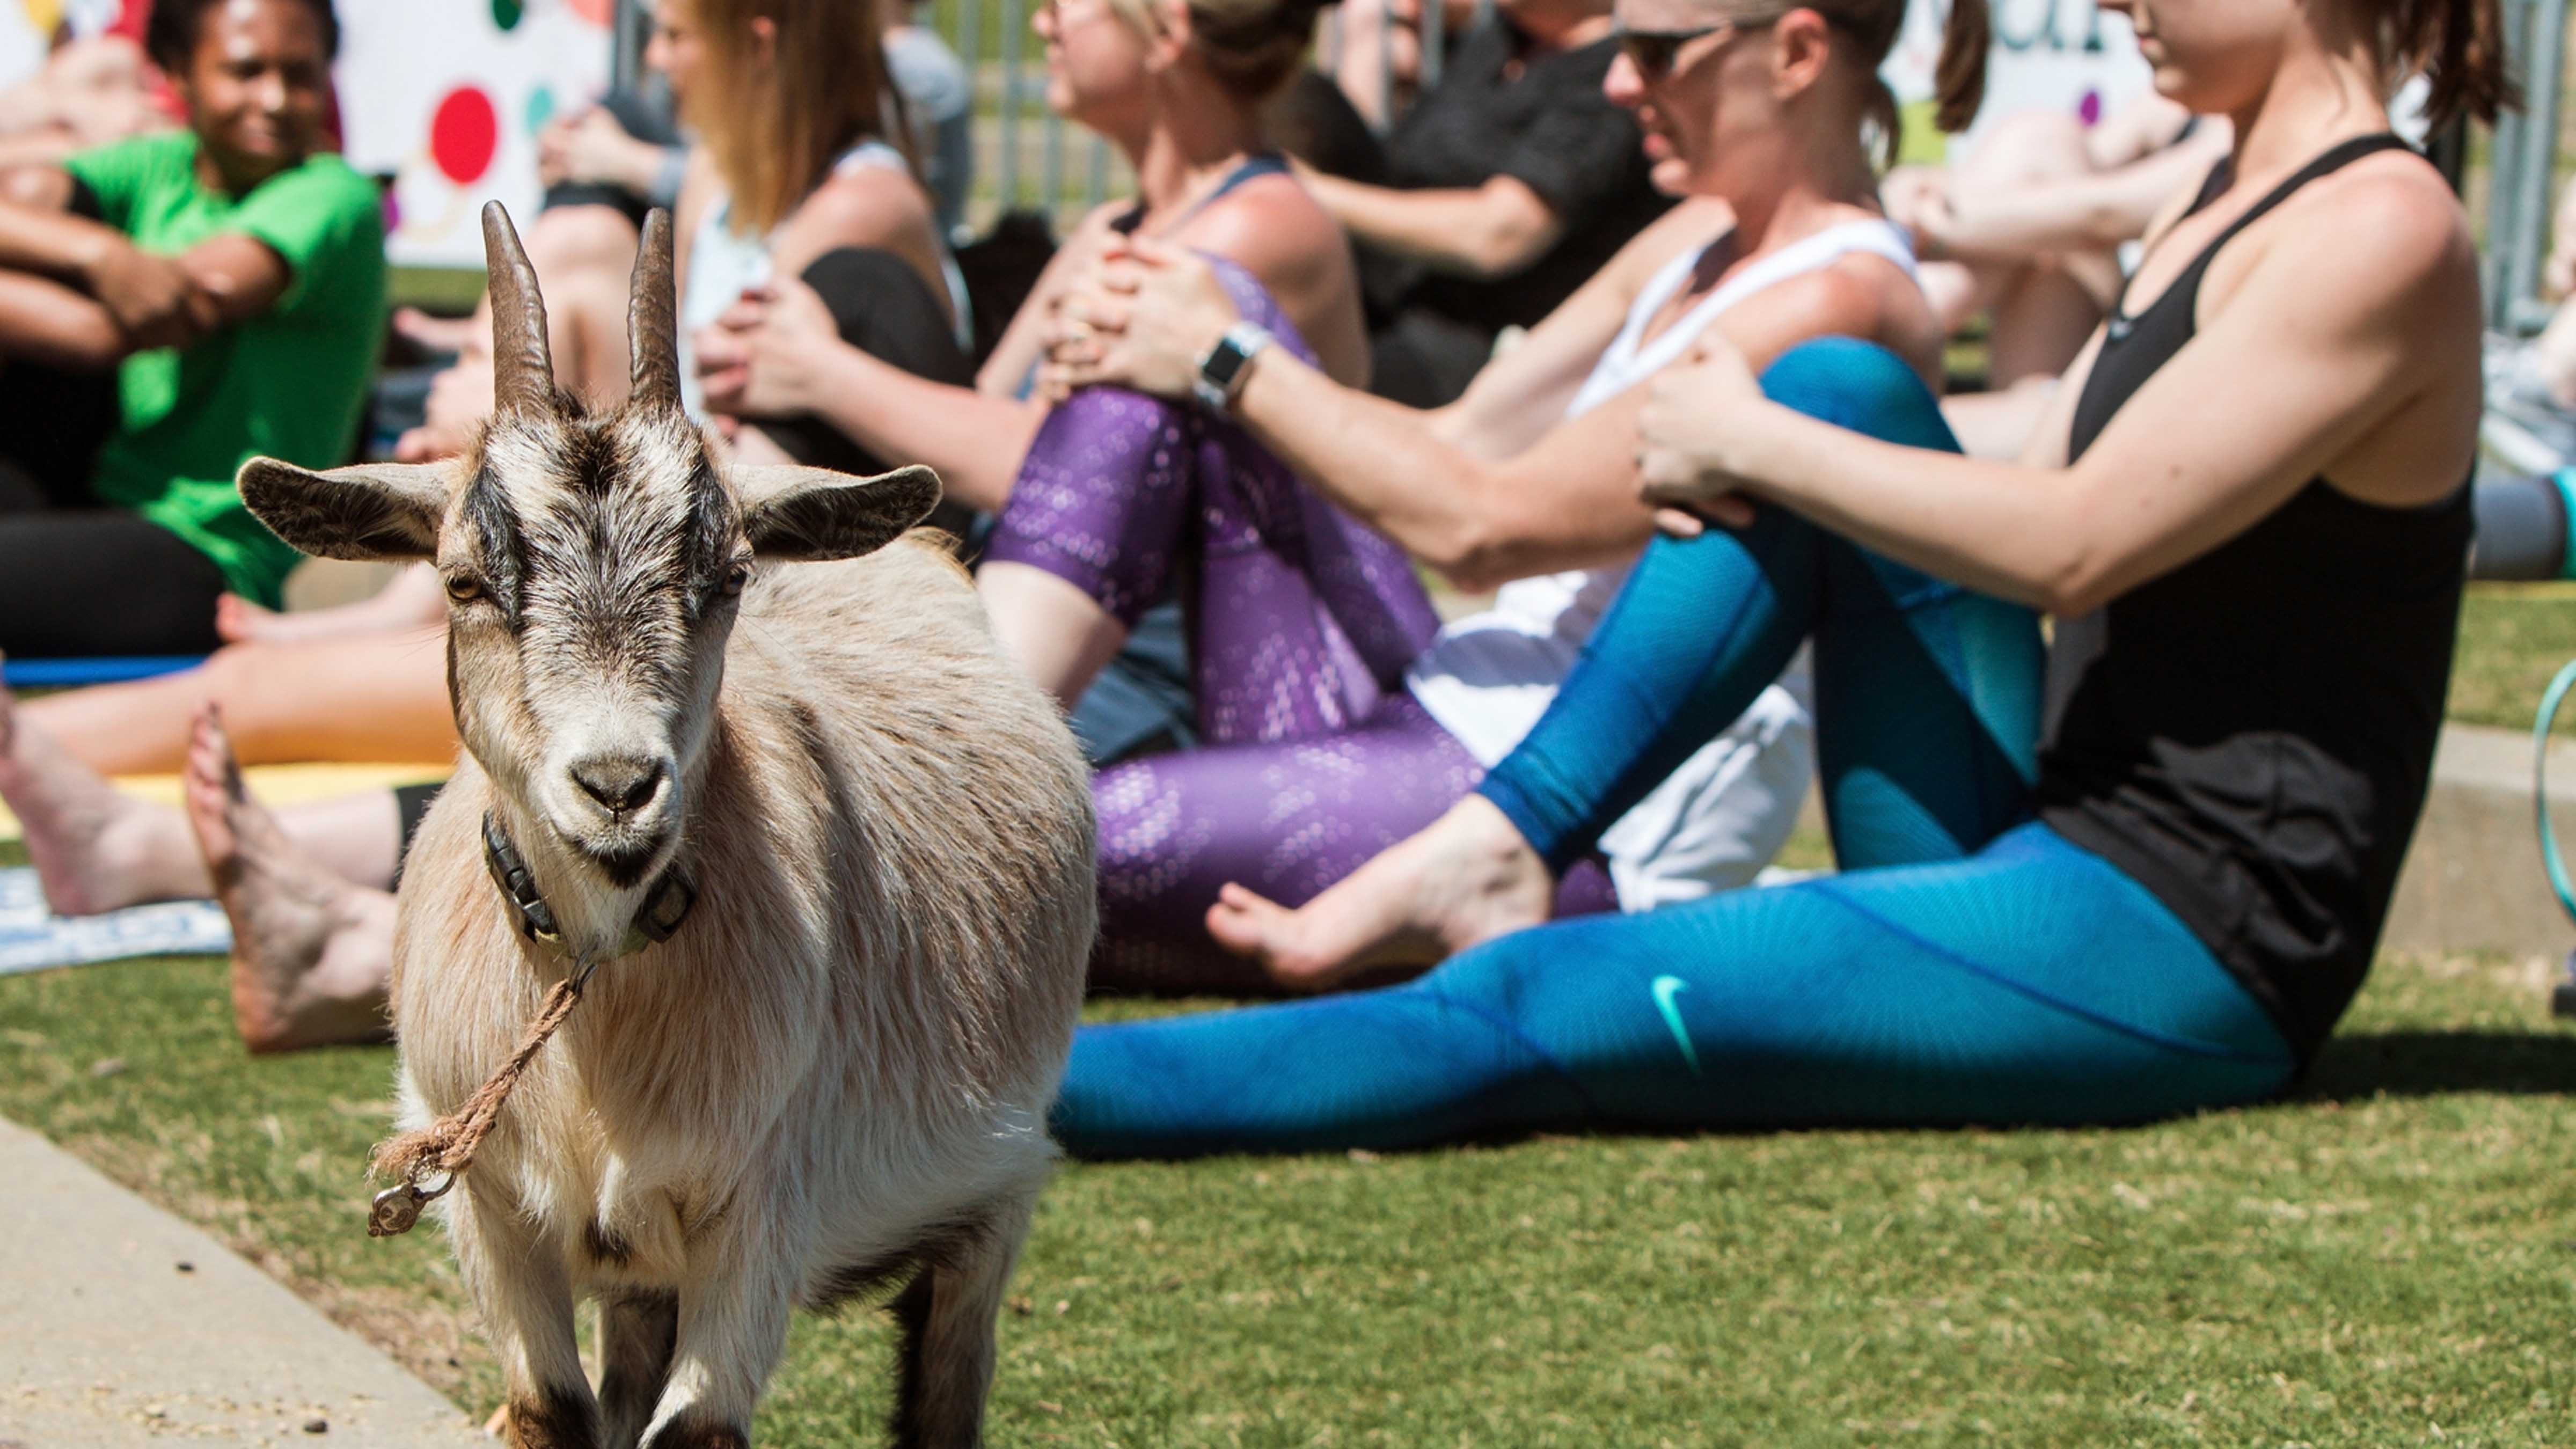 A goat stands among women stretching at a goat yoga event.